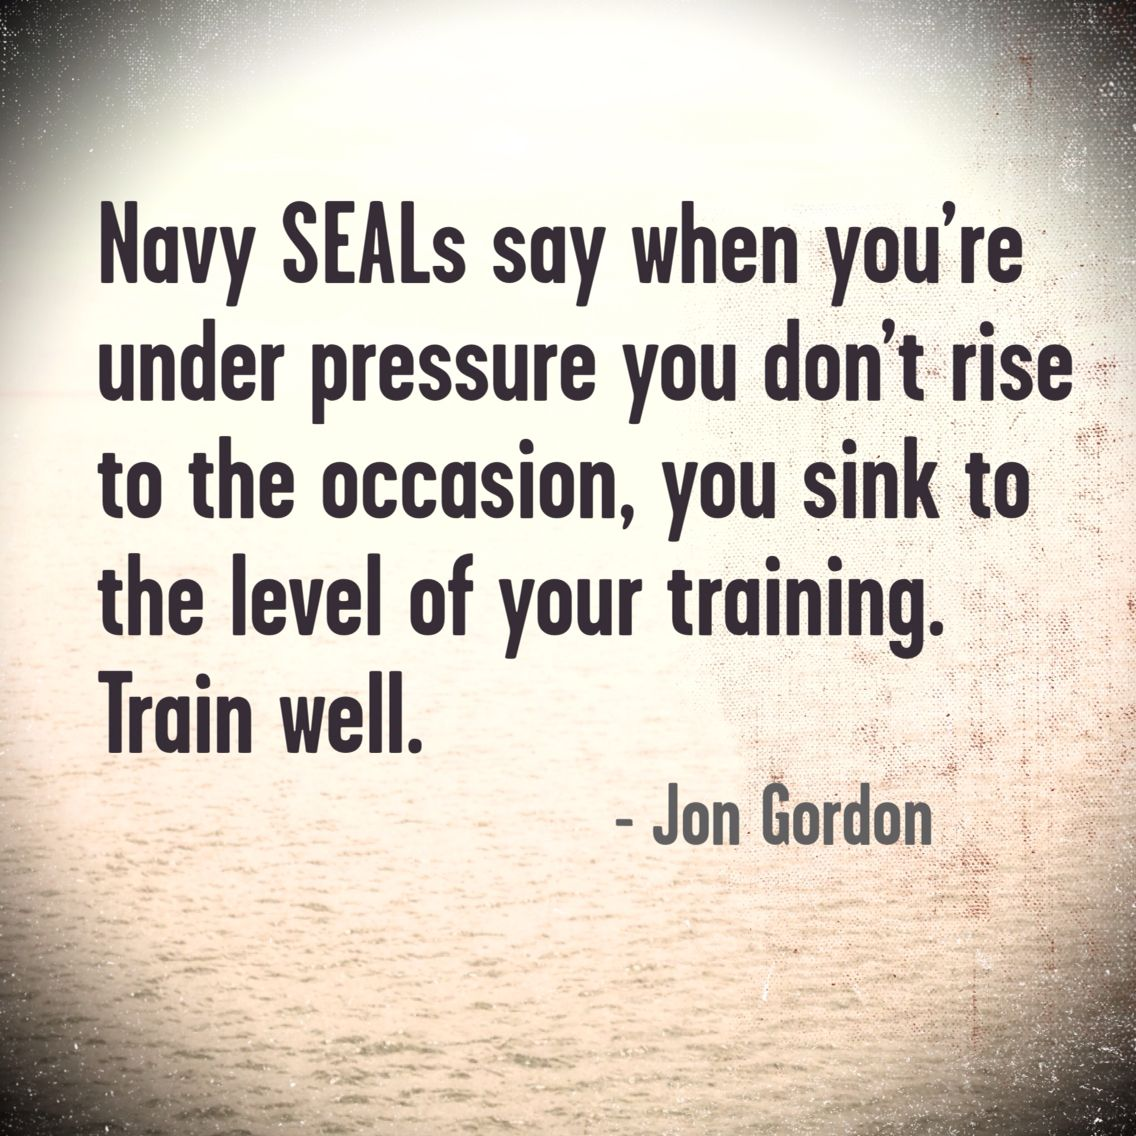 navy seal quotes - Parfu kaptanband co